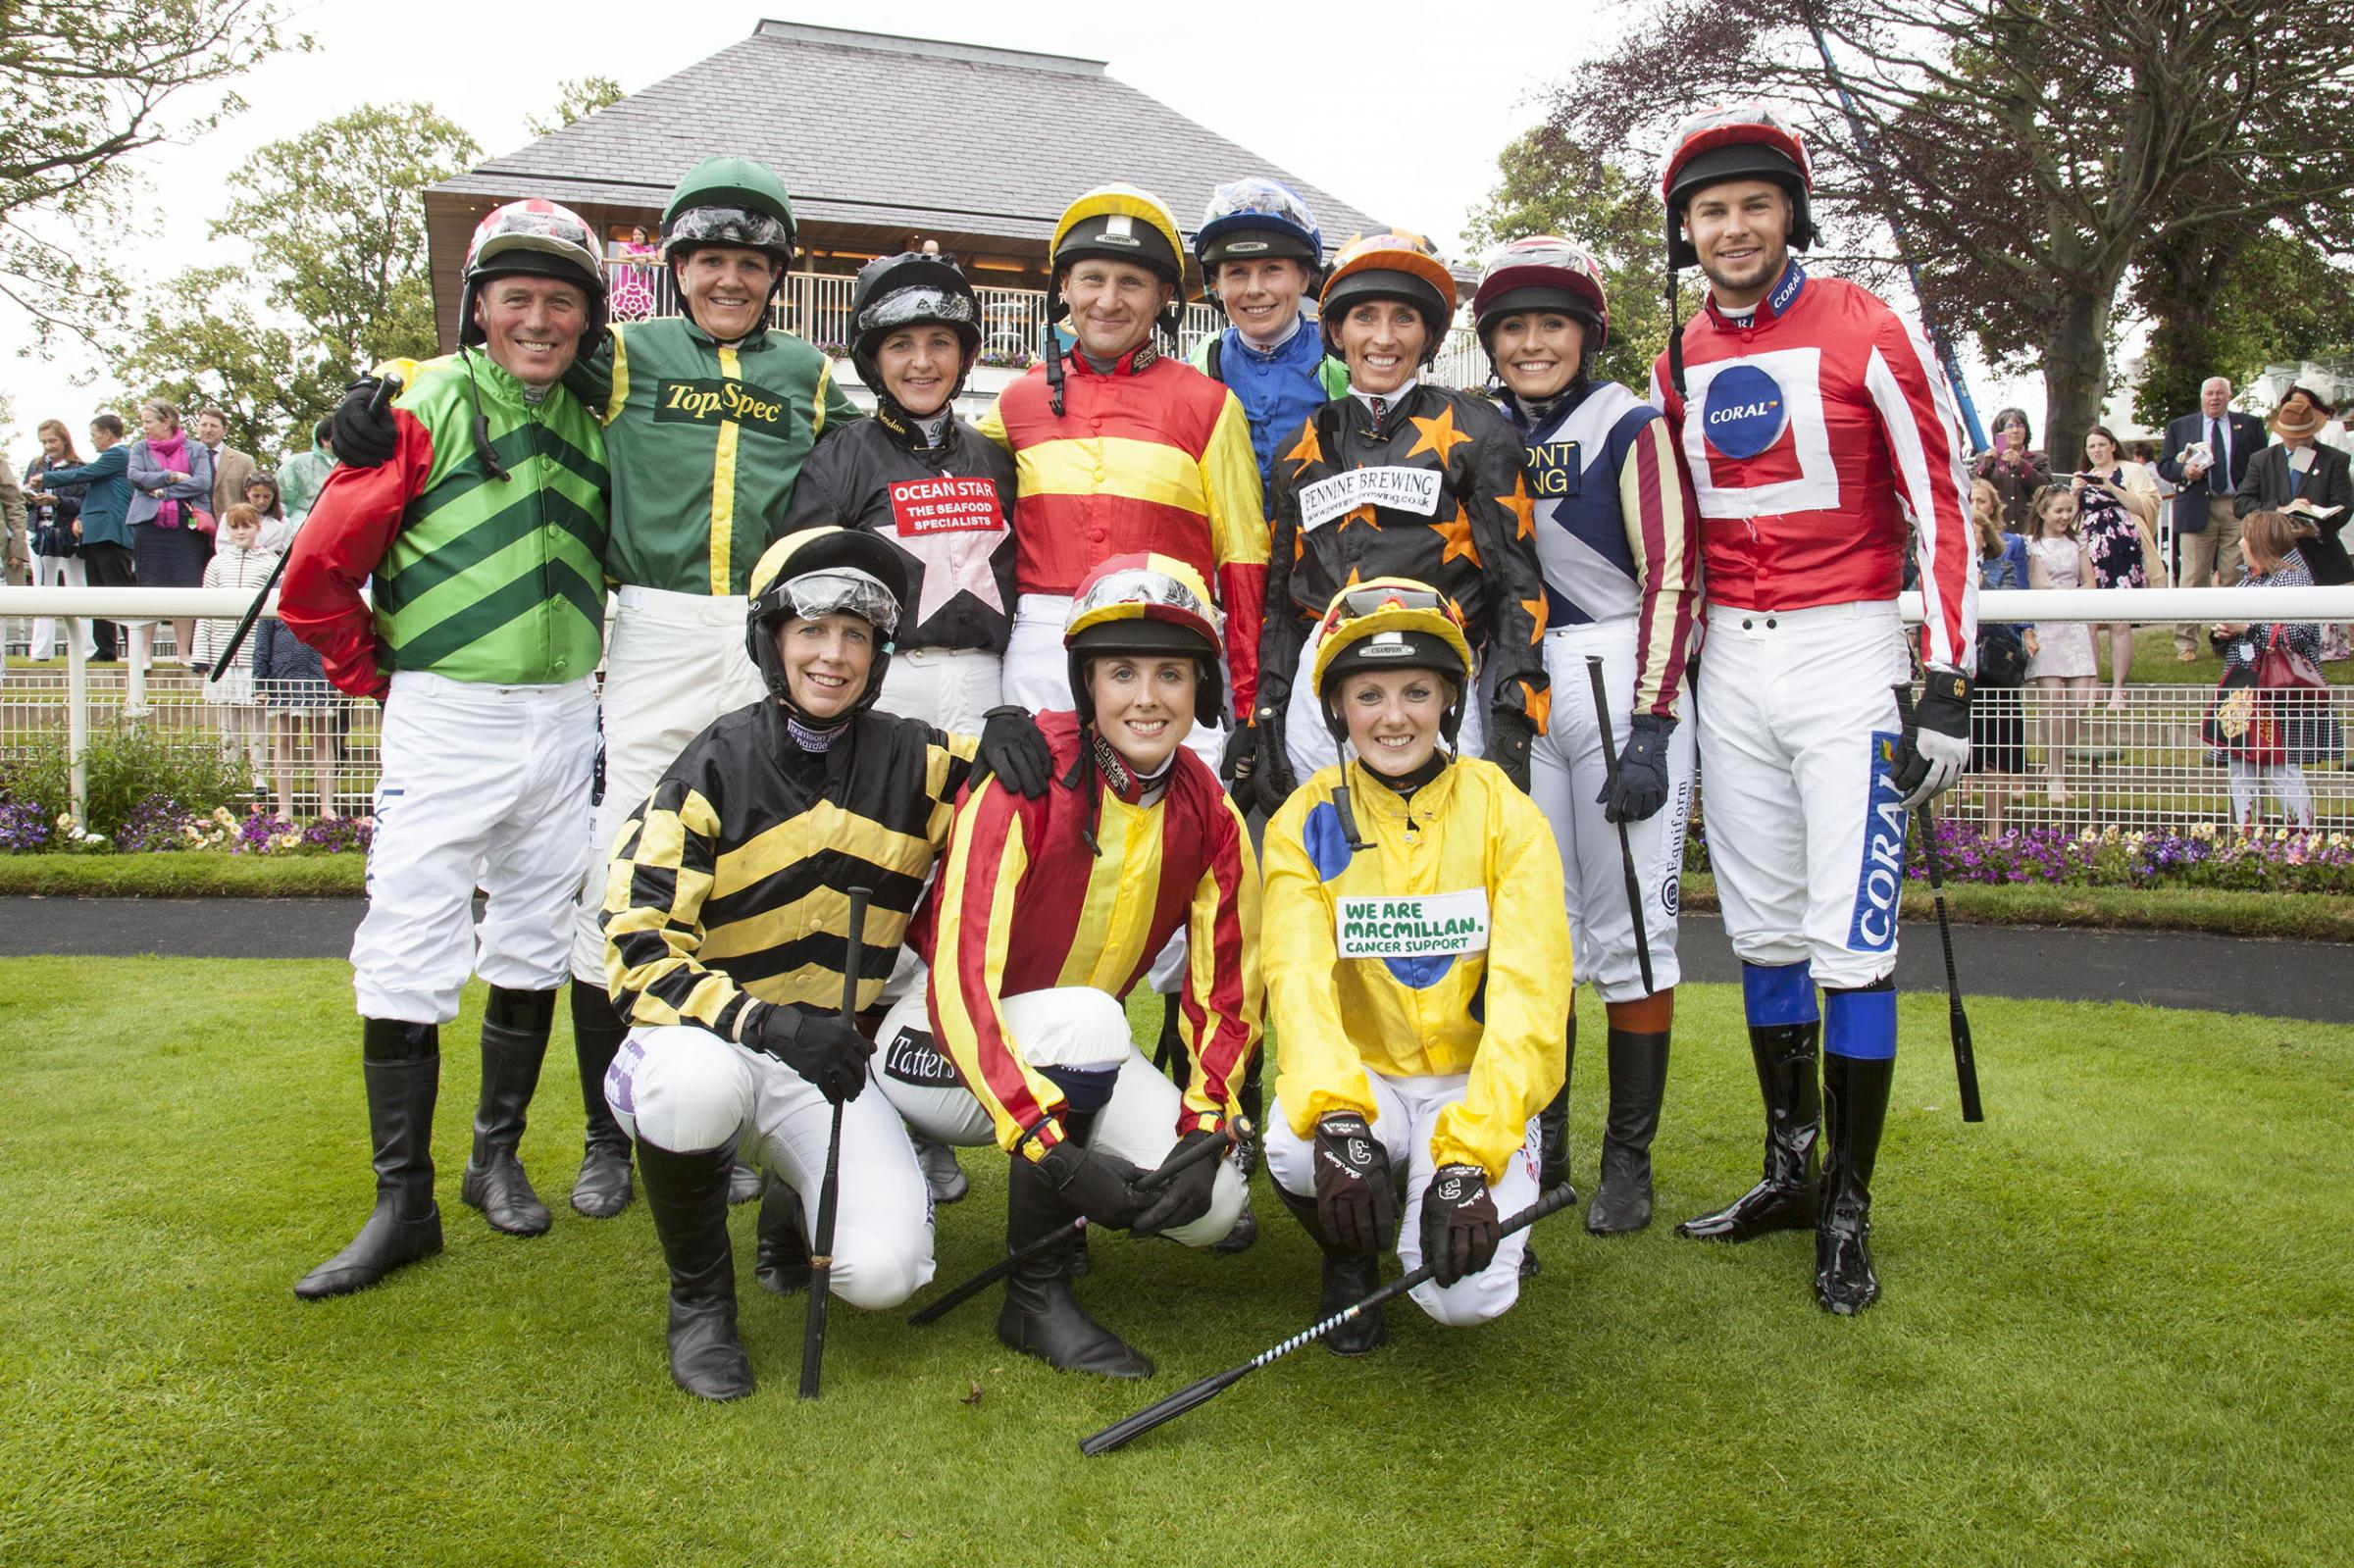 The amateur riders who took part in the Macmillan and Best Western Ride of their Lives 2018 at York Racecourse on Saturday, which included three riders from Ryedale